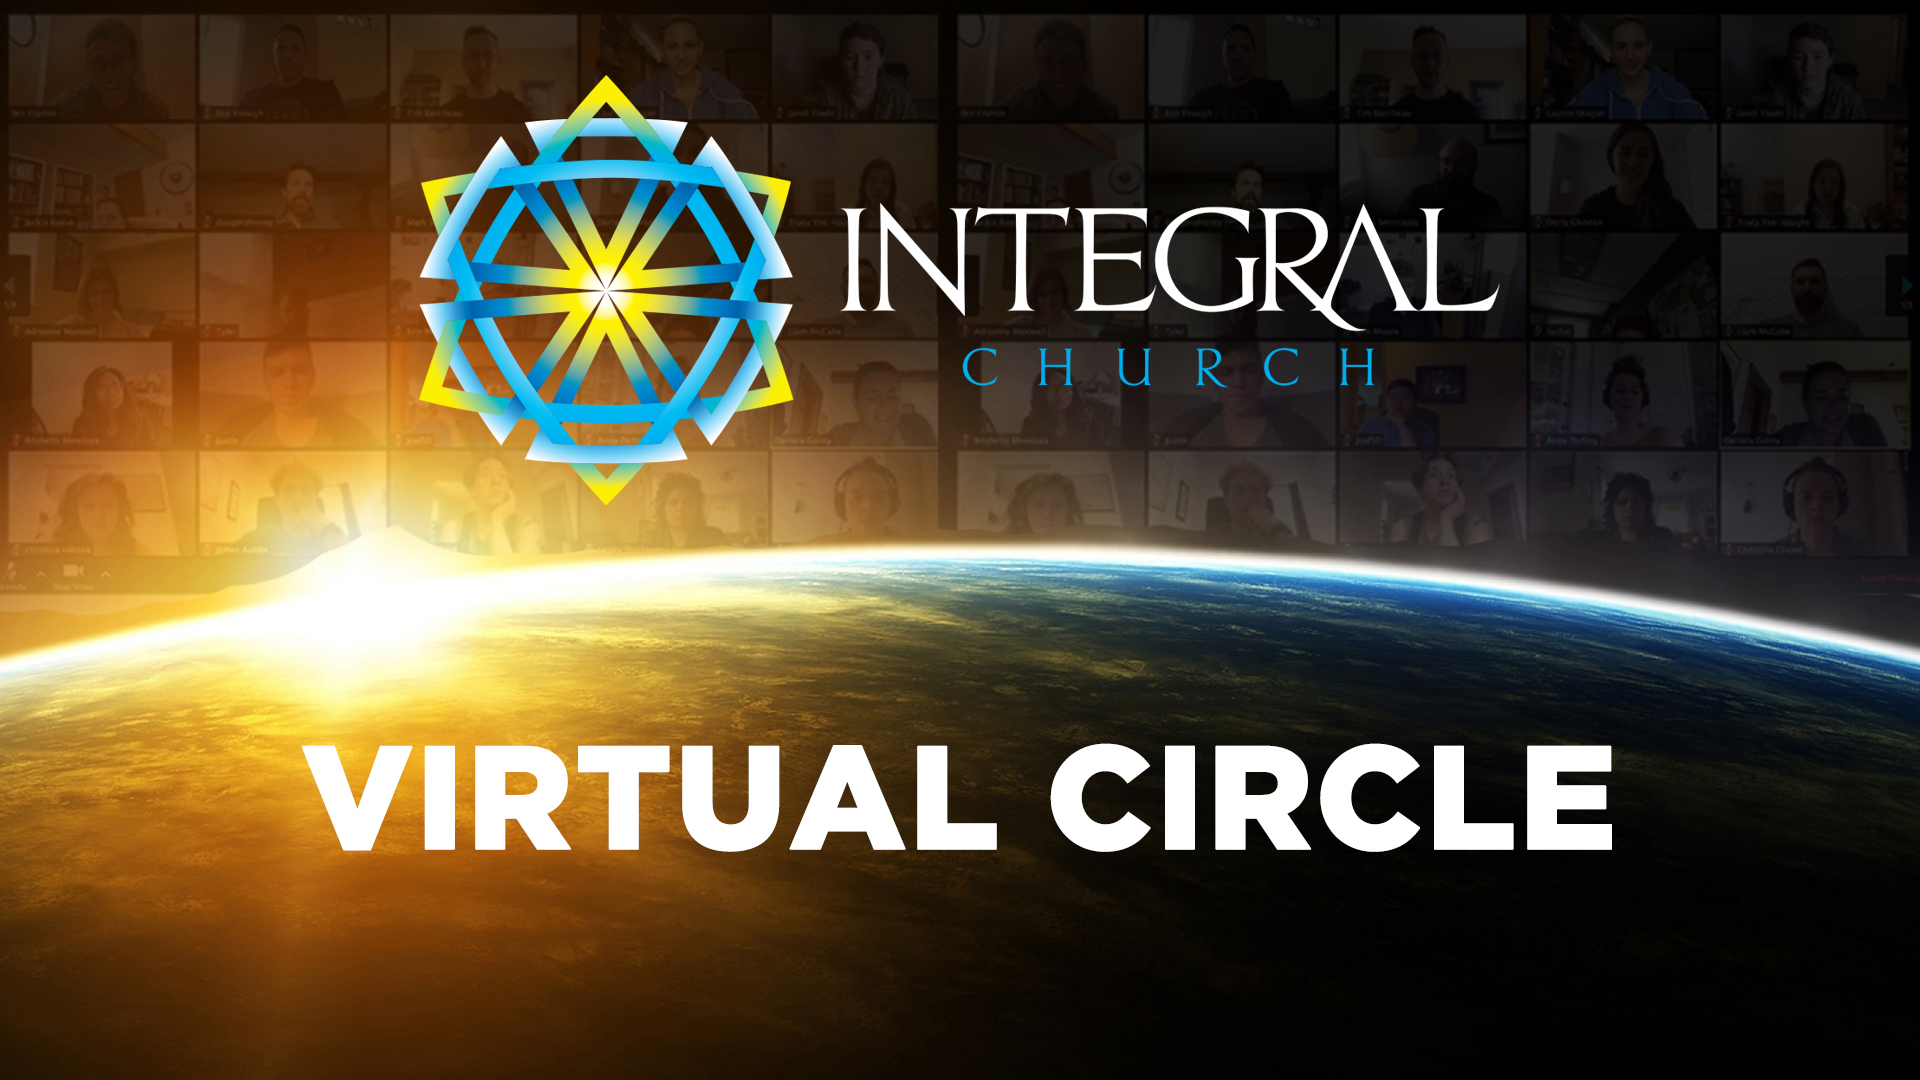 Integral-Church-Virtual-Zoom-1920